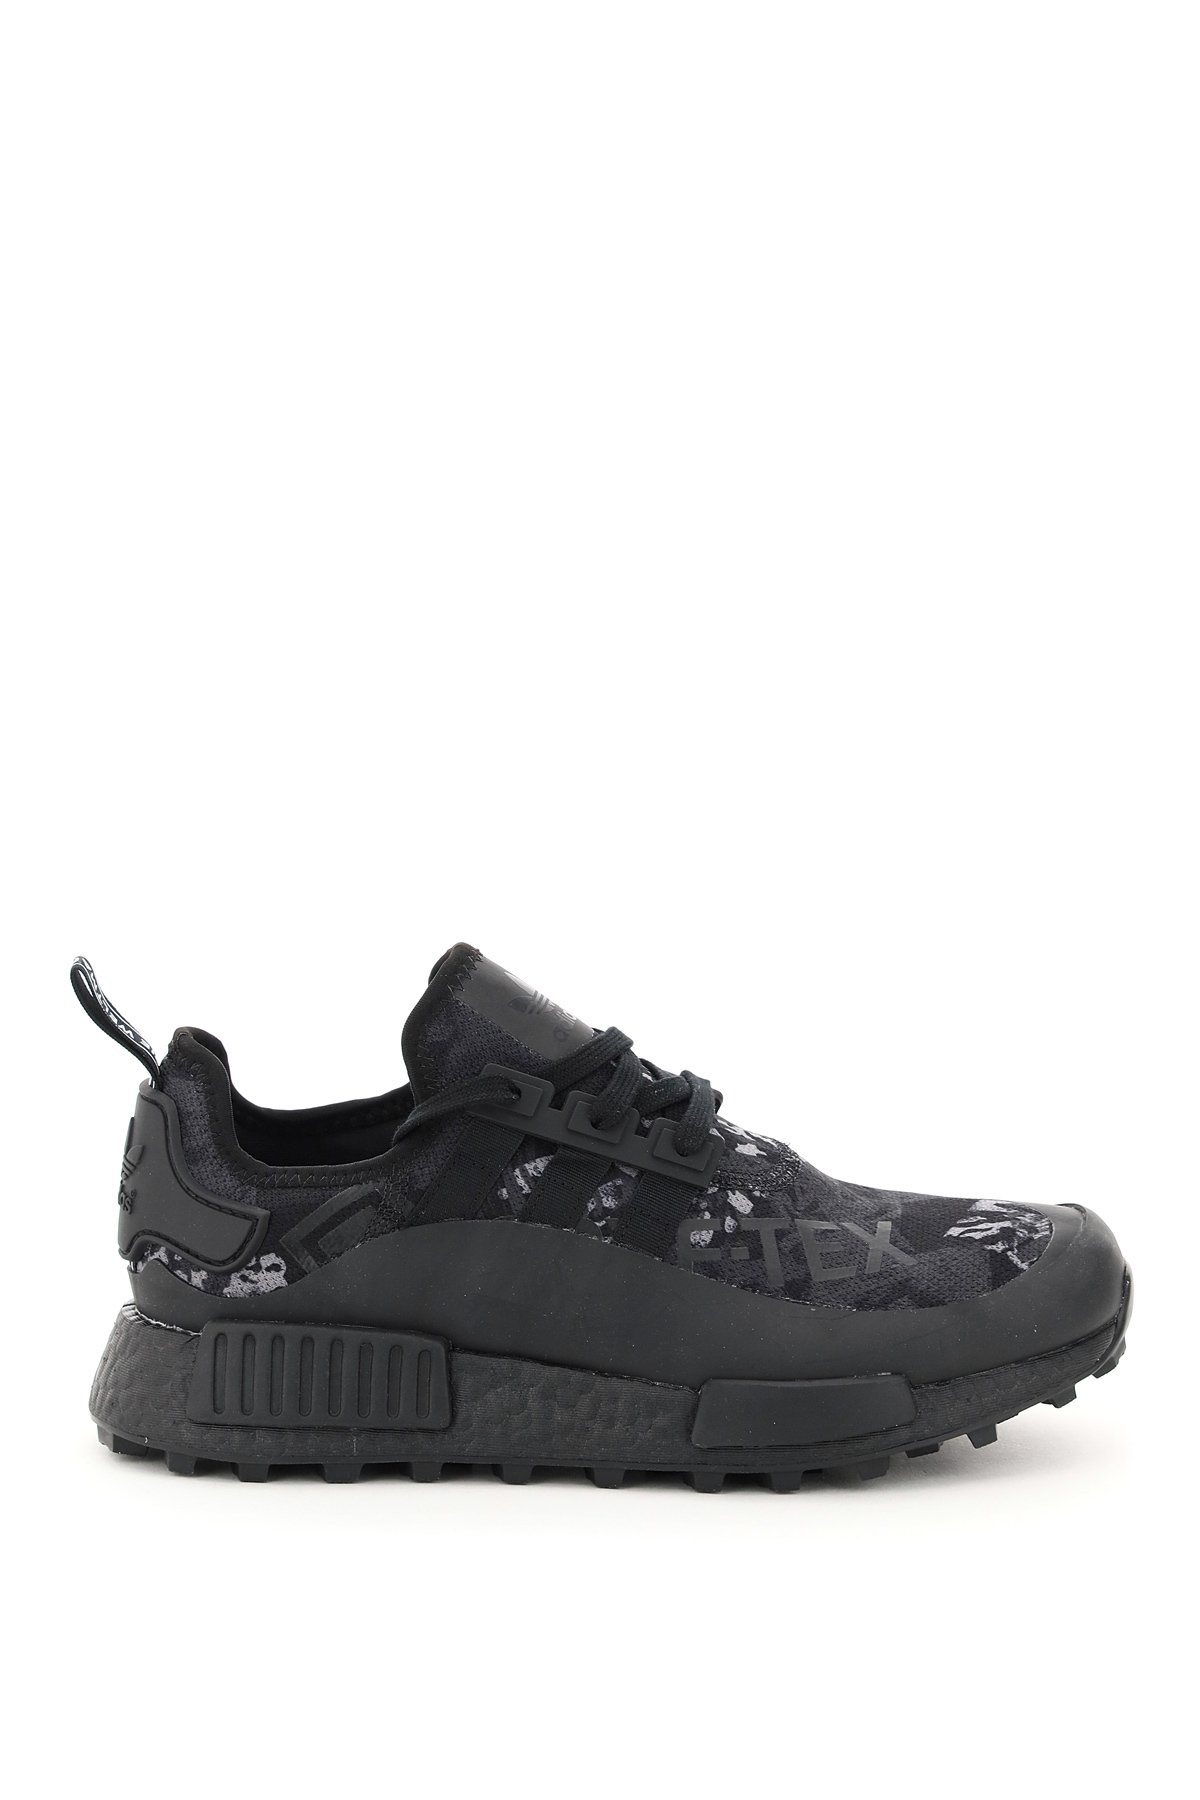 Adidas sneakers nomad nmd r1 trail gore-tex